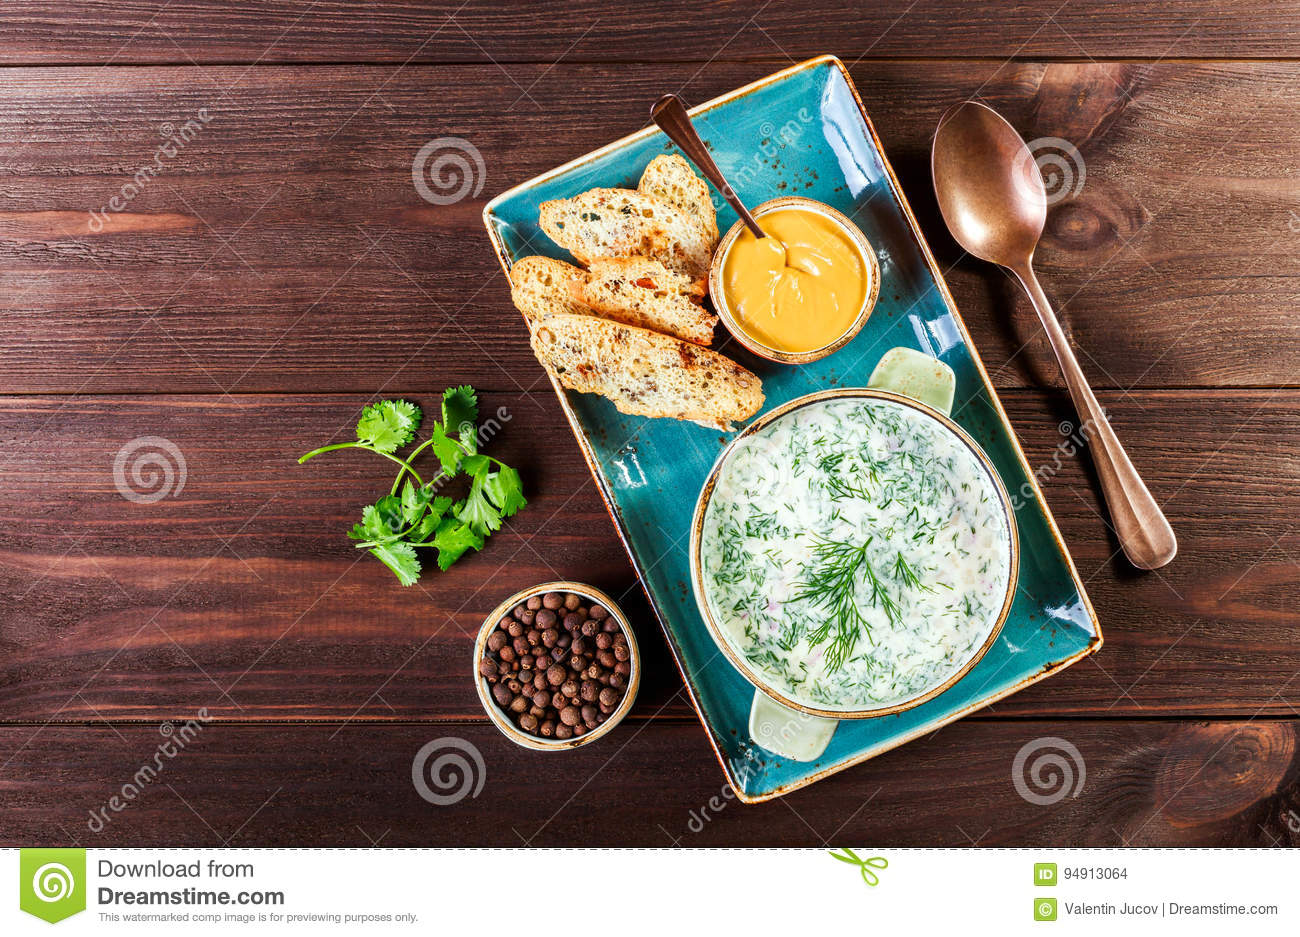 Cold soup or summer yoghurt with radish, cucumber, dill, herbs and crackers on dark wooden background. Okroshka. Homemade food.